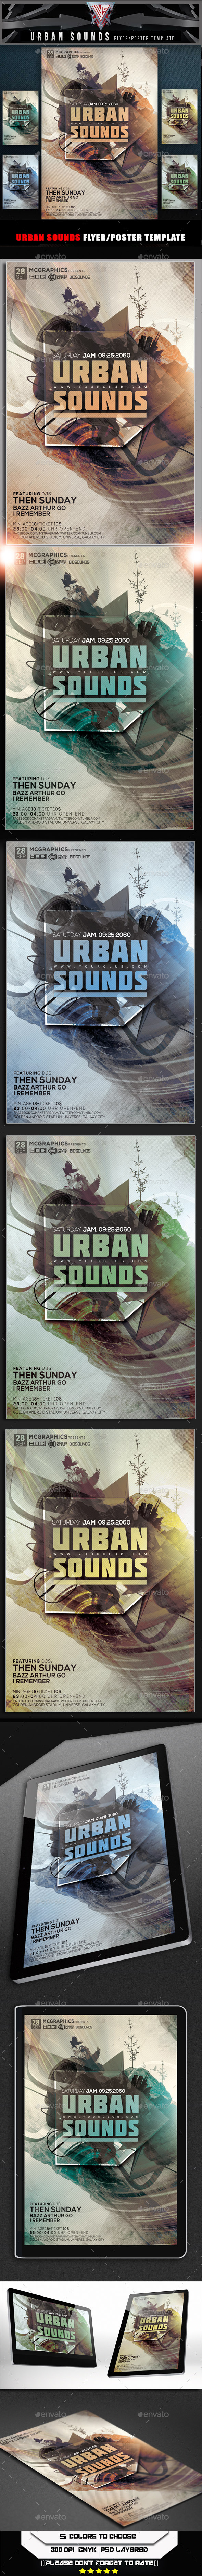 GraphicRiver Urban Sounds Flyer Template 10373484